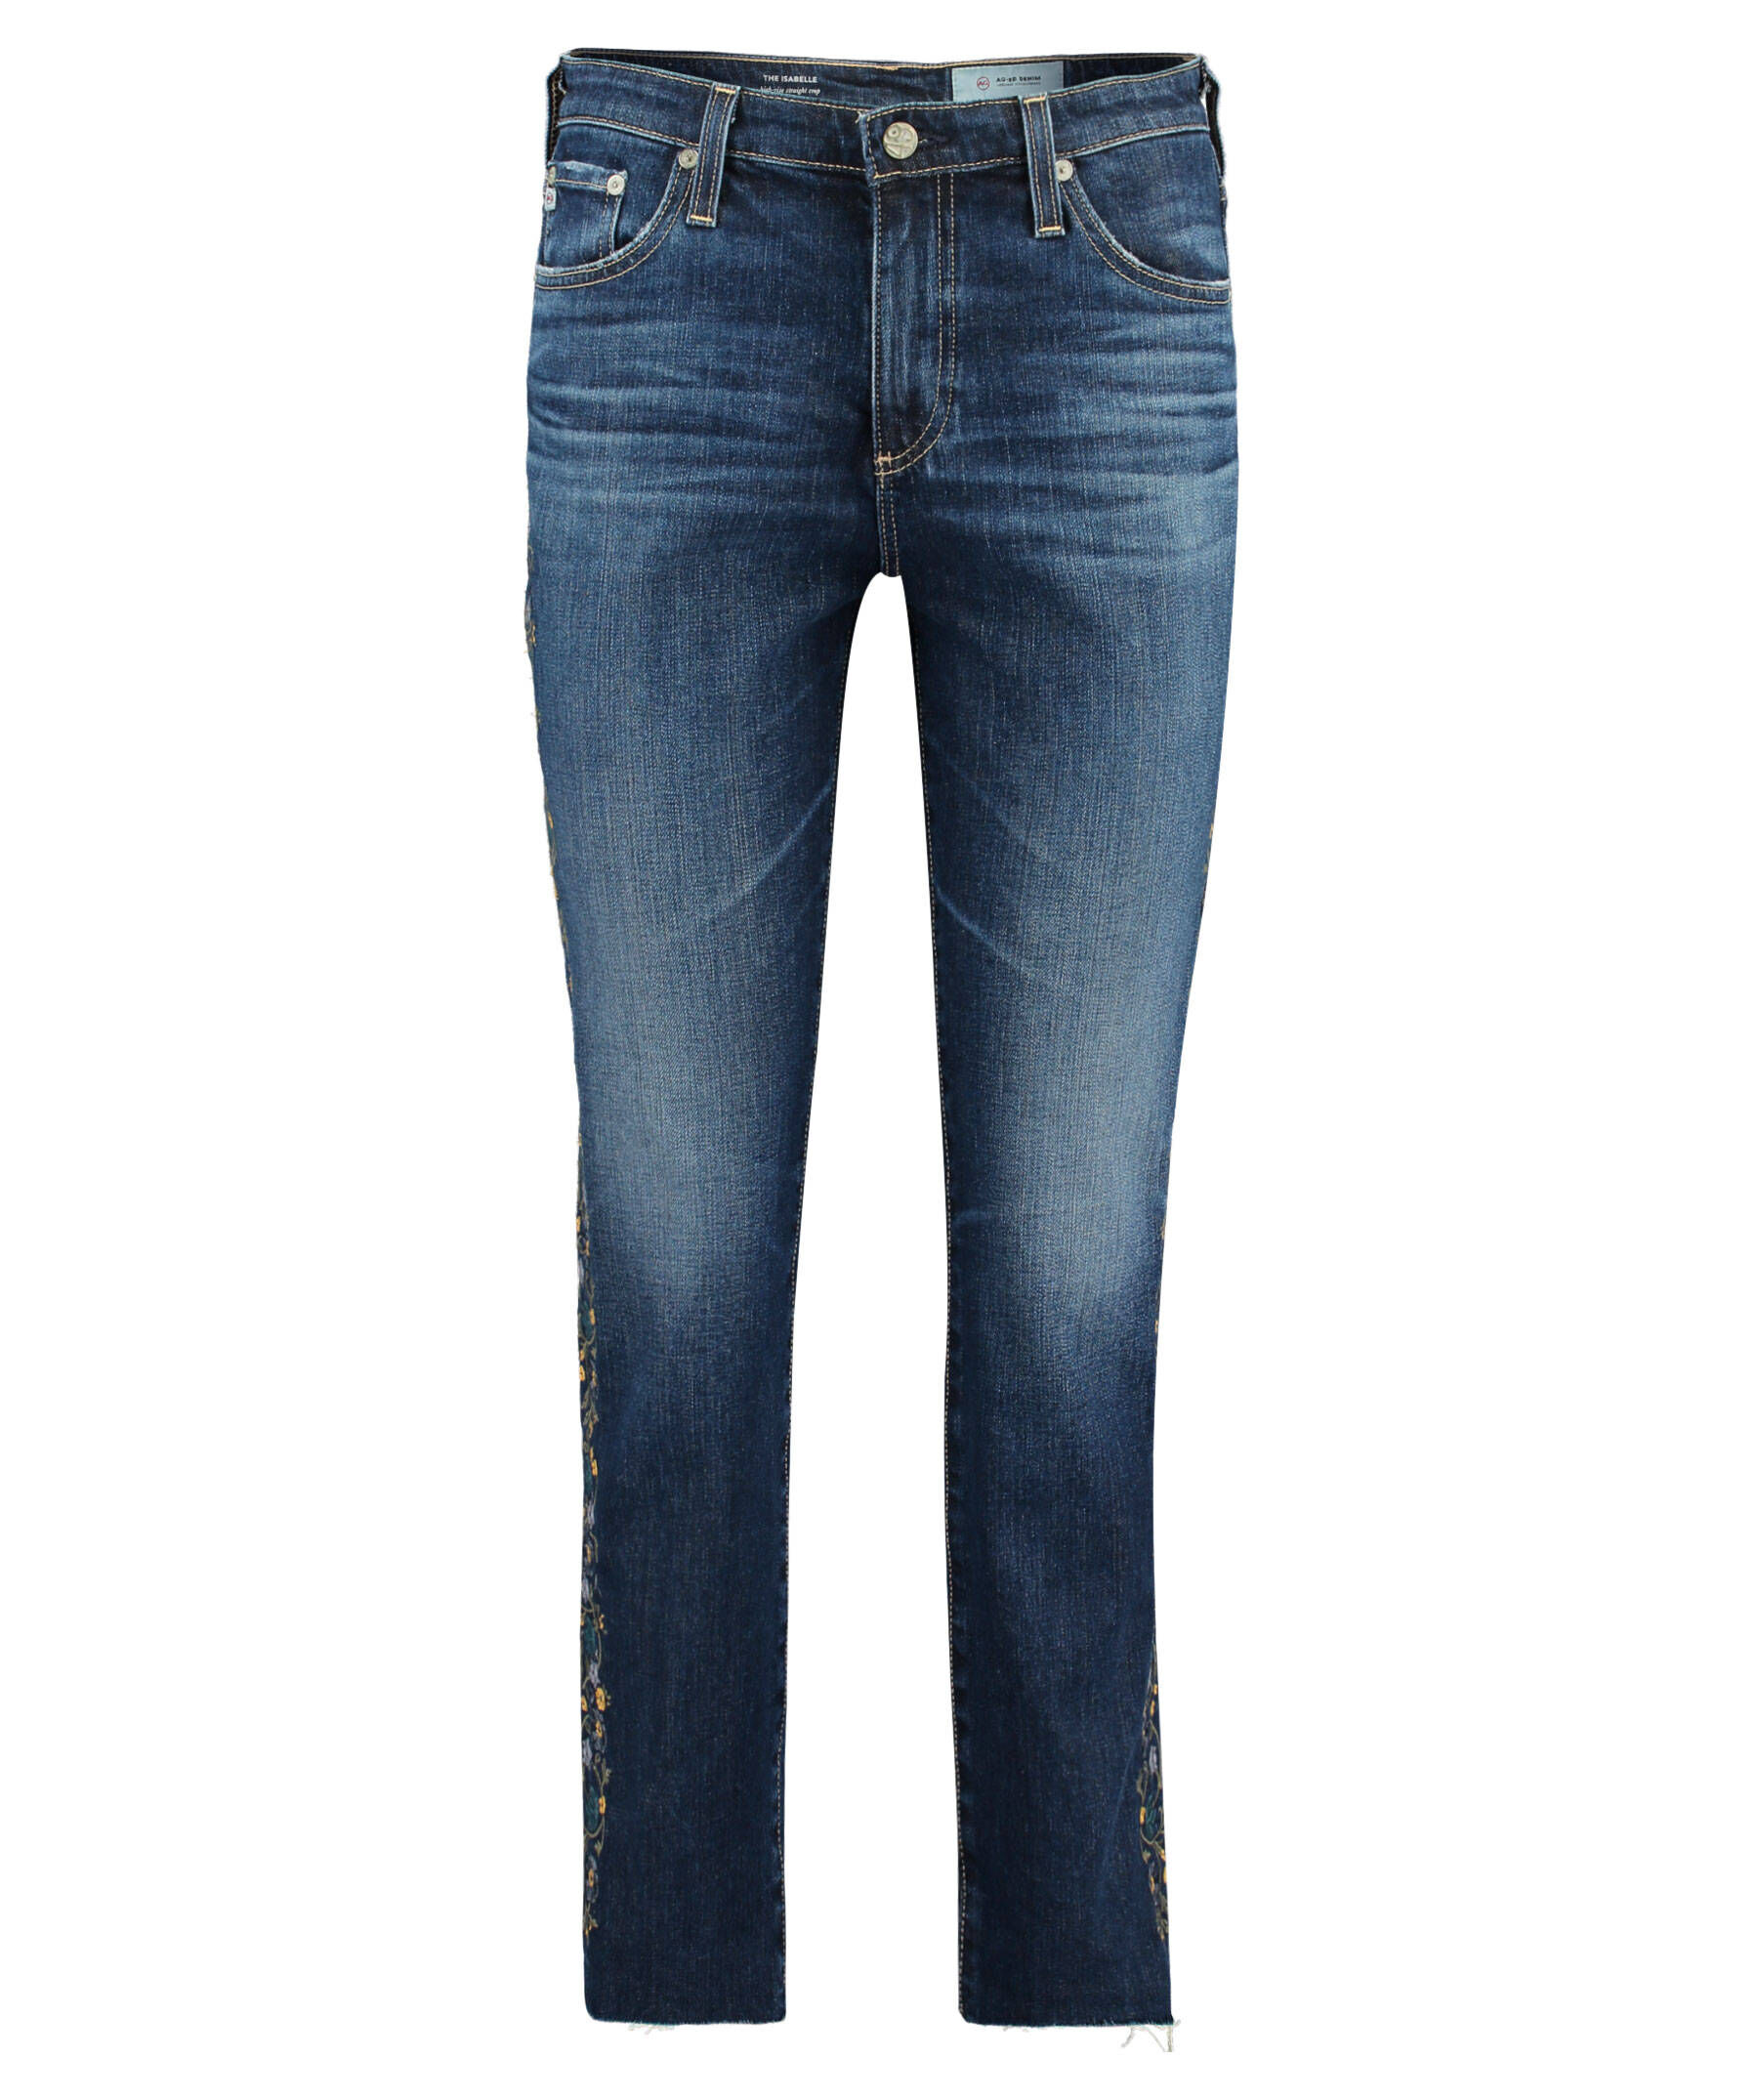 The Jodi 7/8-Jeans High-Rise Slim Flare Crop (Blau) - Damen (25;26;27) AG - Adriano Goldschmied meCS17D2